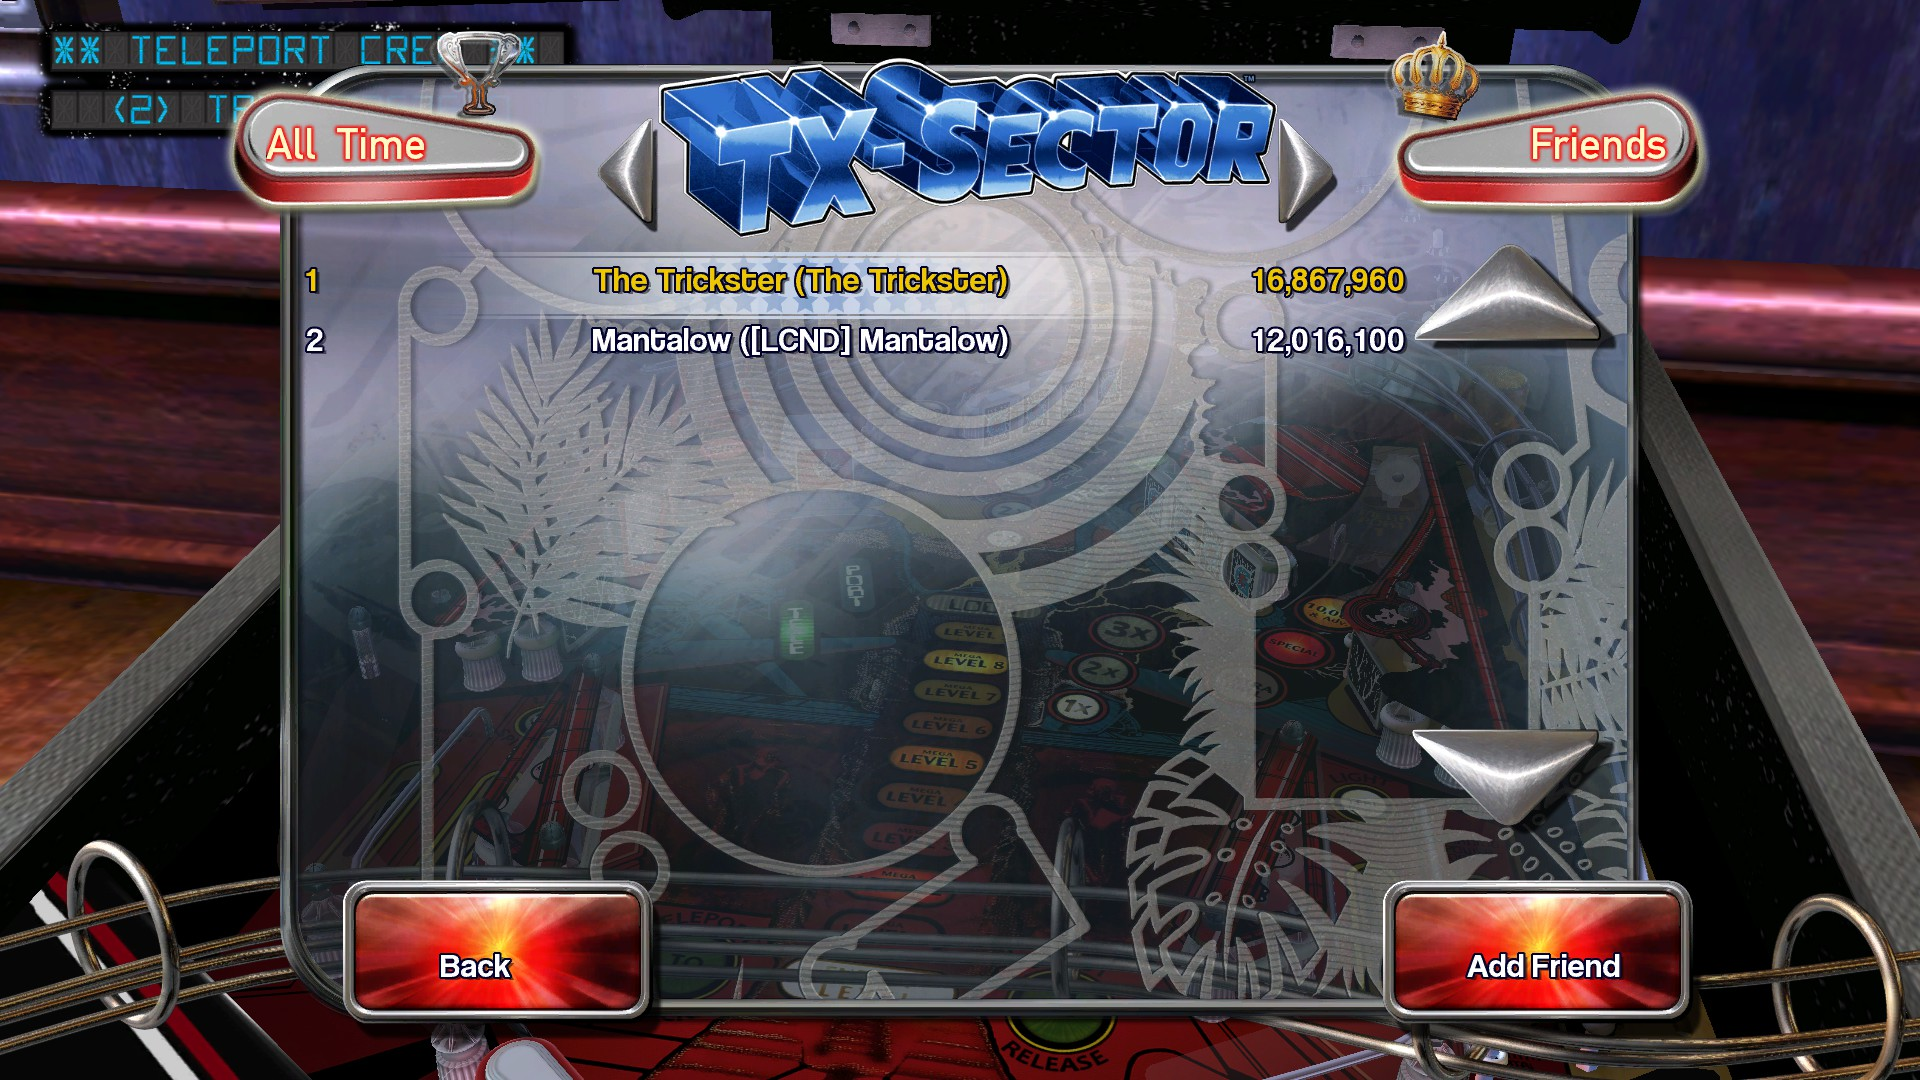 TheTrickster: Pinball Arcade: TX-Sector (PC) 16,867,960 points on 2016-06-10 08:39:38